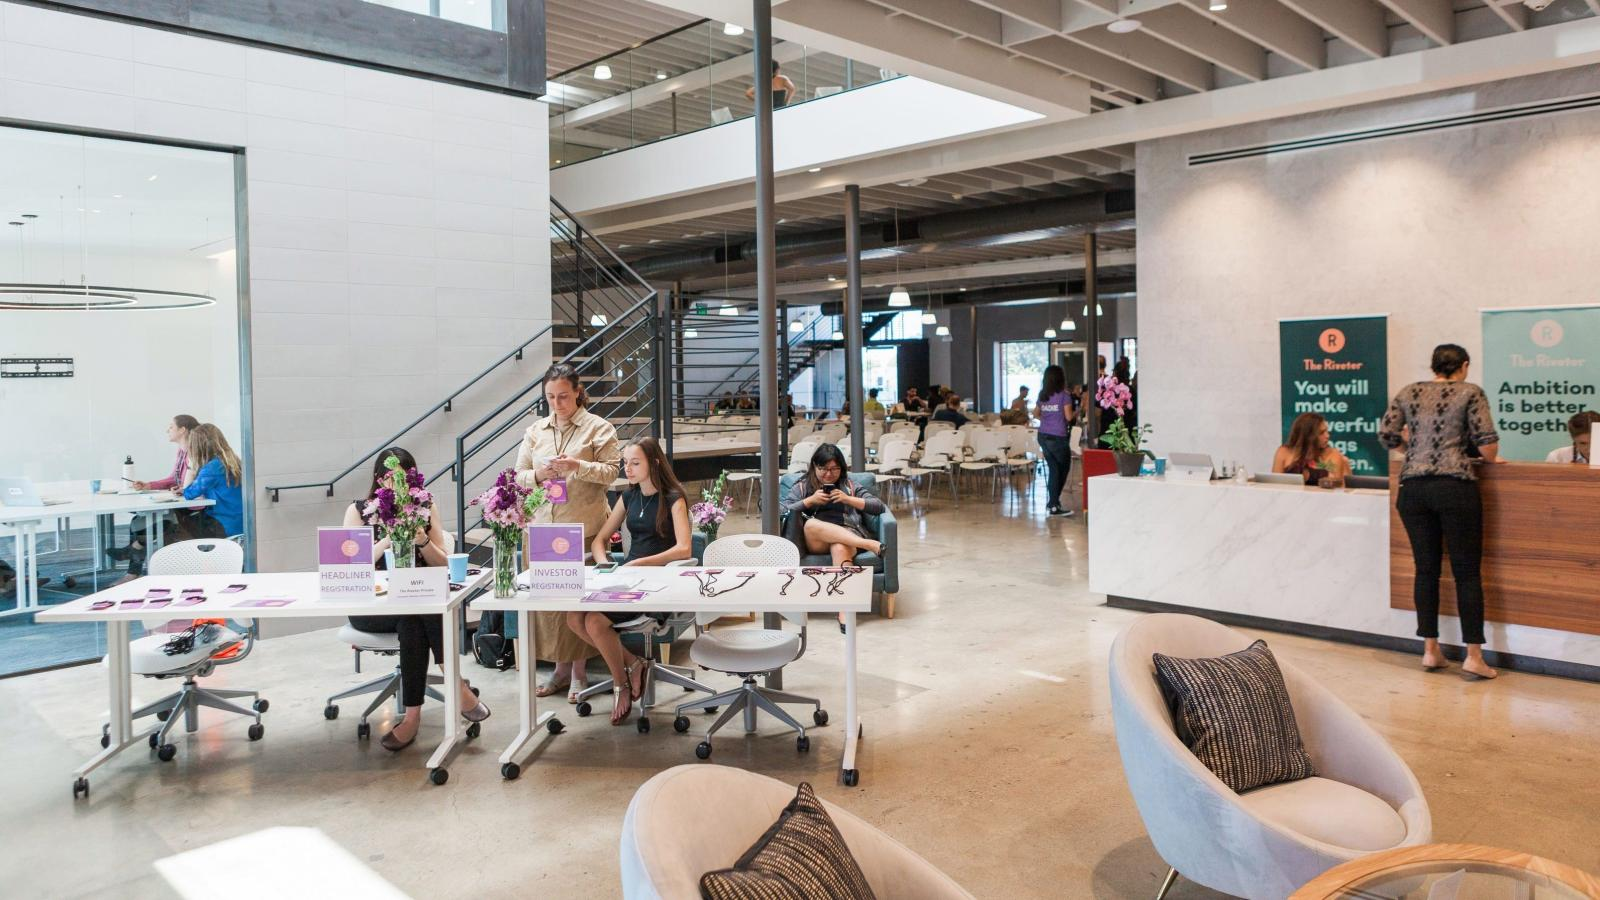 Facts about Coworking Spaces You Probably Don't Know